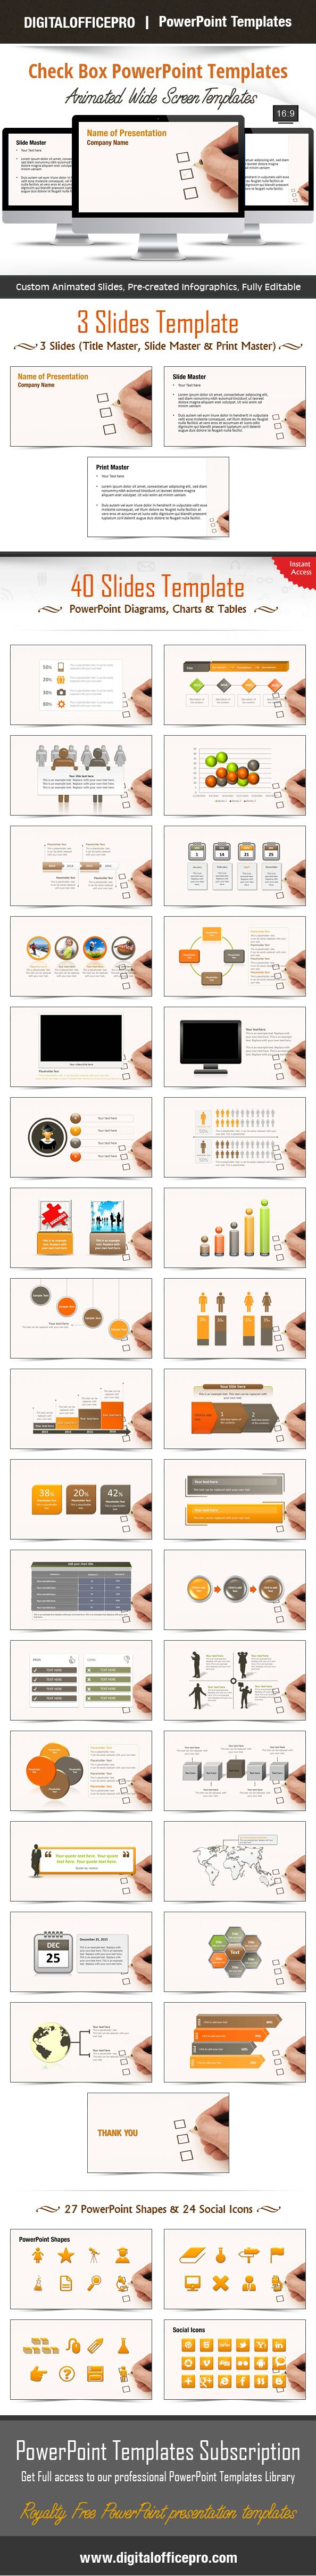 powerpoint templates for box charts .